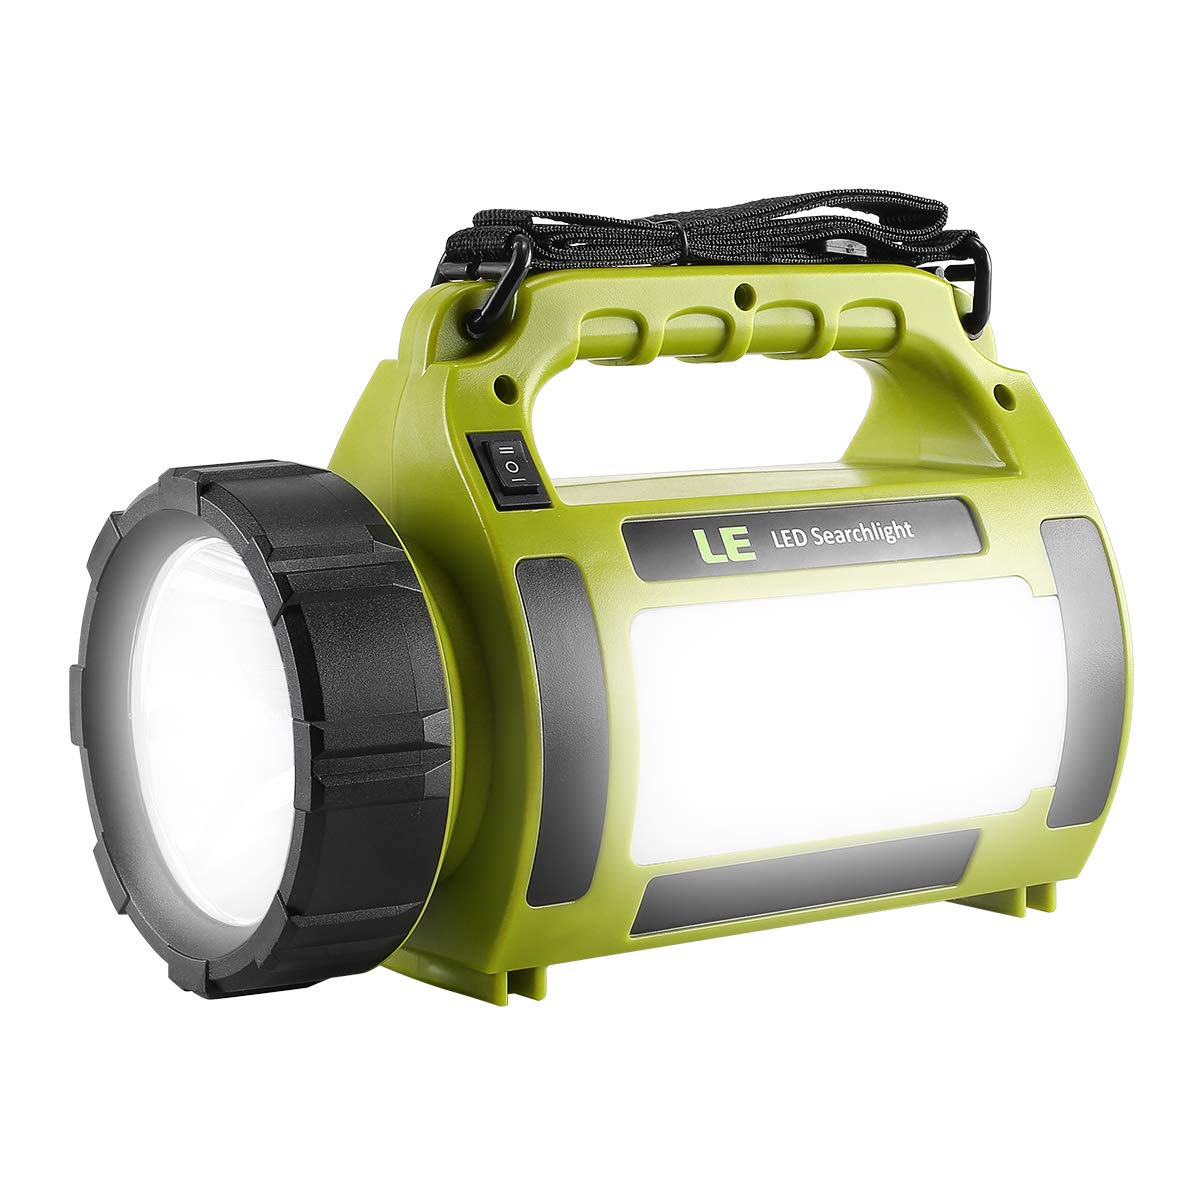 LE Rechargeable LED Camping Lantern, 1000LM, 5 Light Modes, 3600mAh Power Bank, IPX4 Waterproof, Perfect Lantern Flashlight for Hurricane Emergency, Hiking, Home and More, USB Cable Included by LE